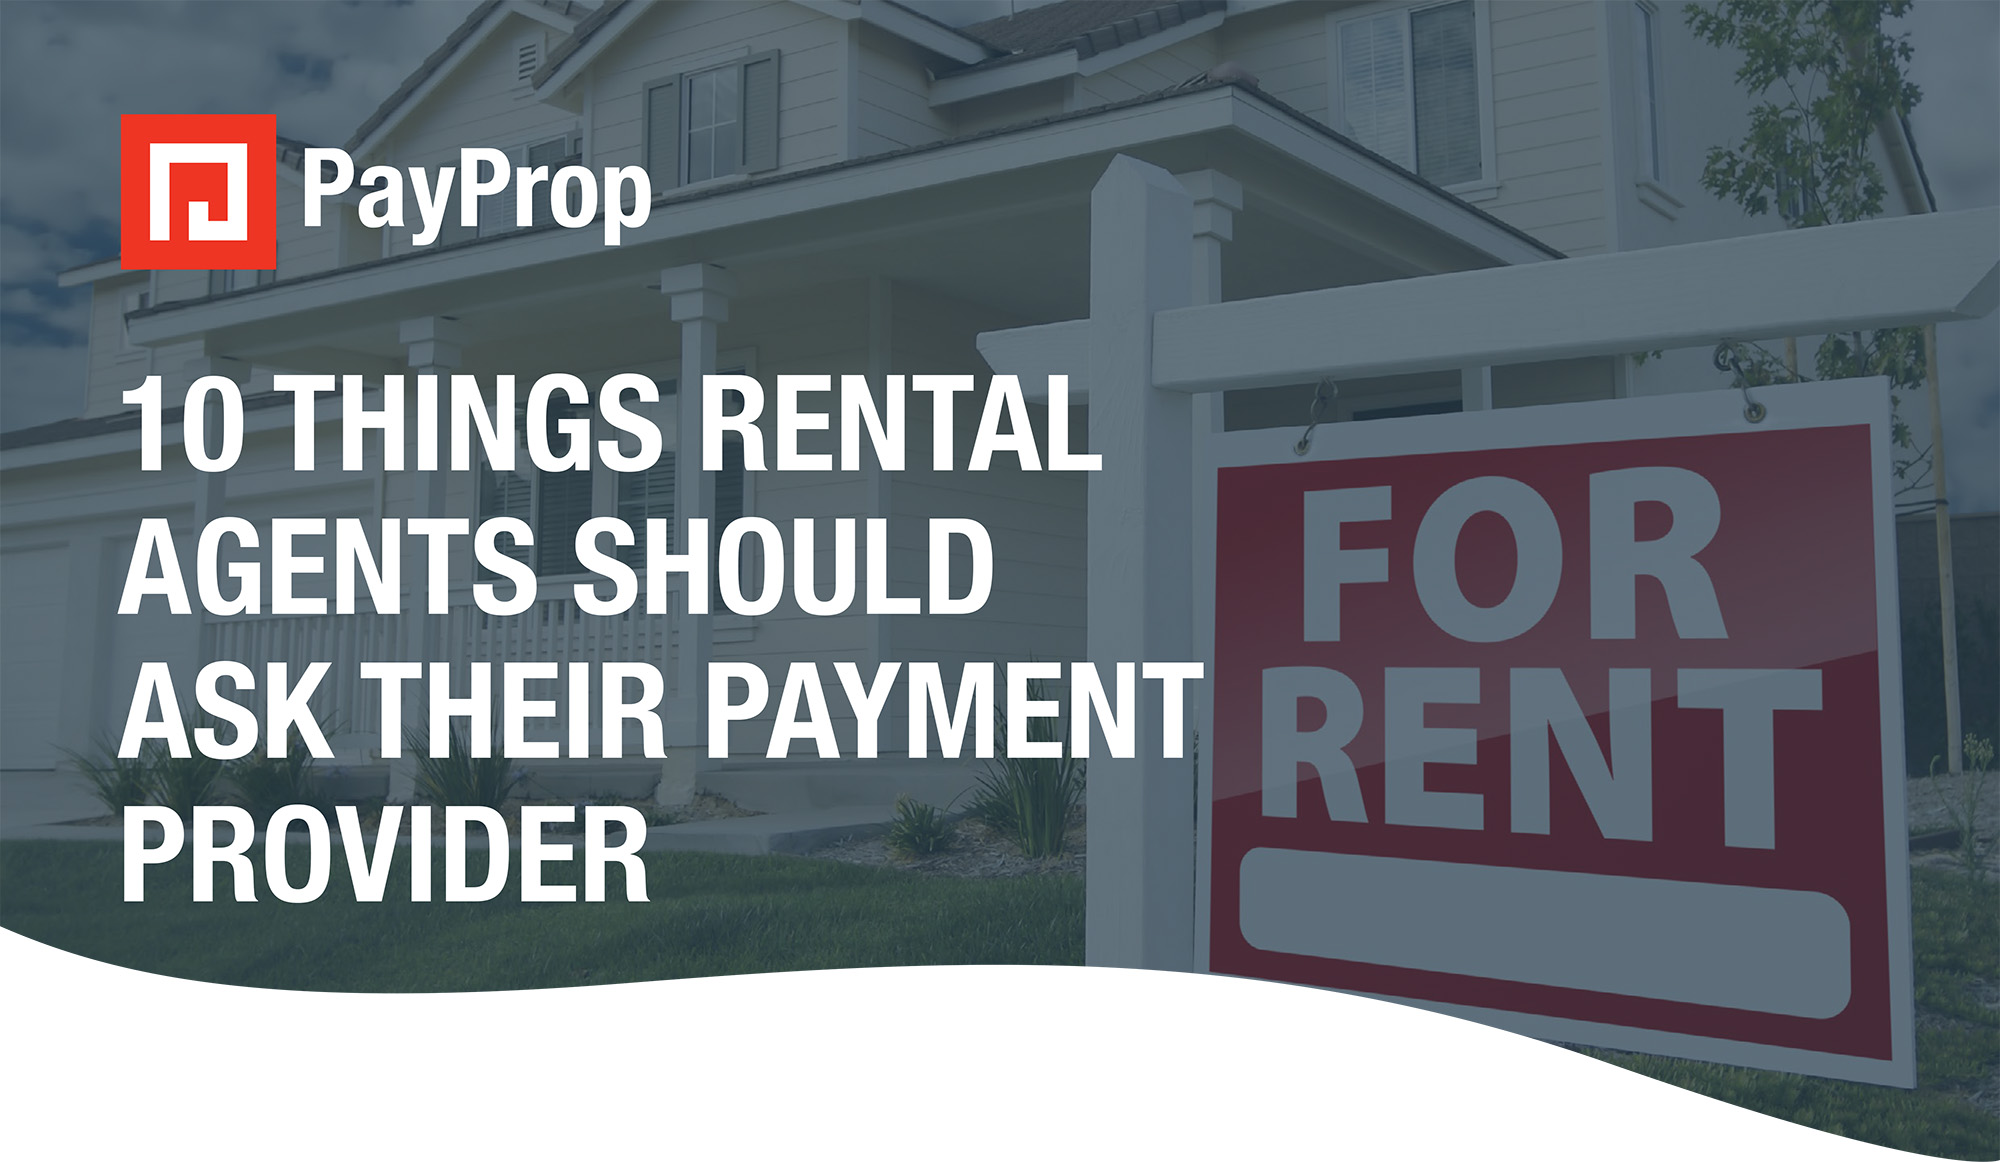 10 things rental agents should ask their payment provider